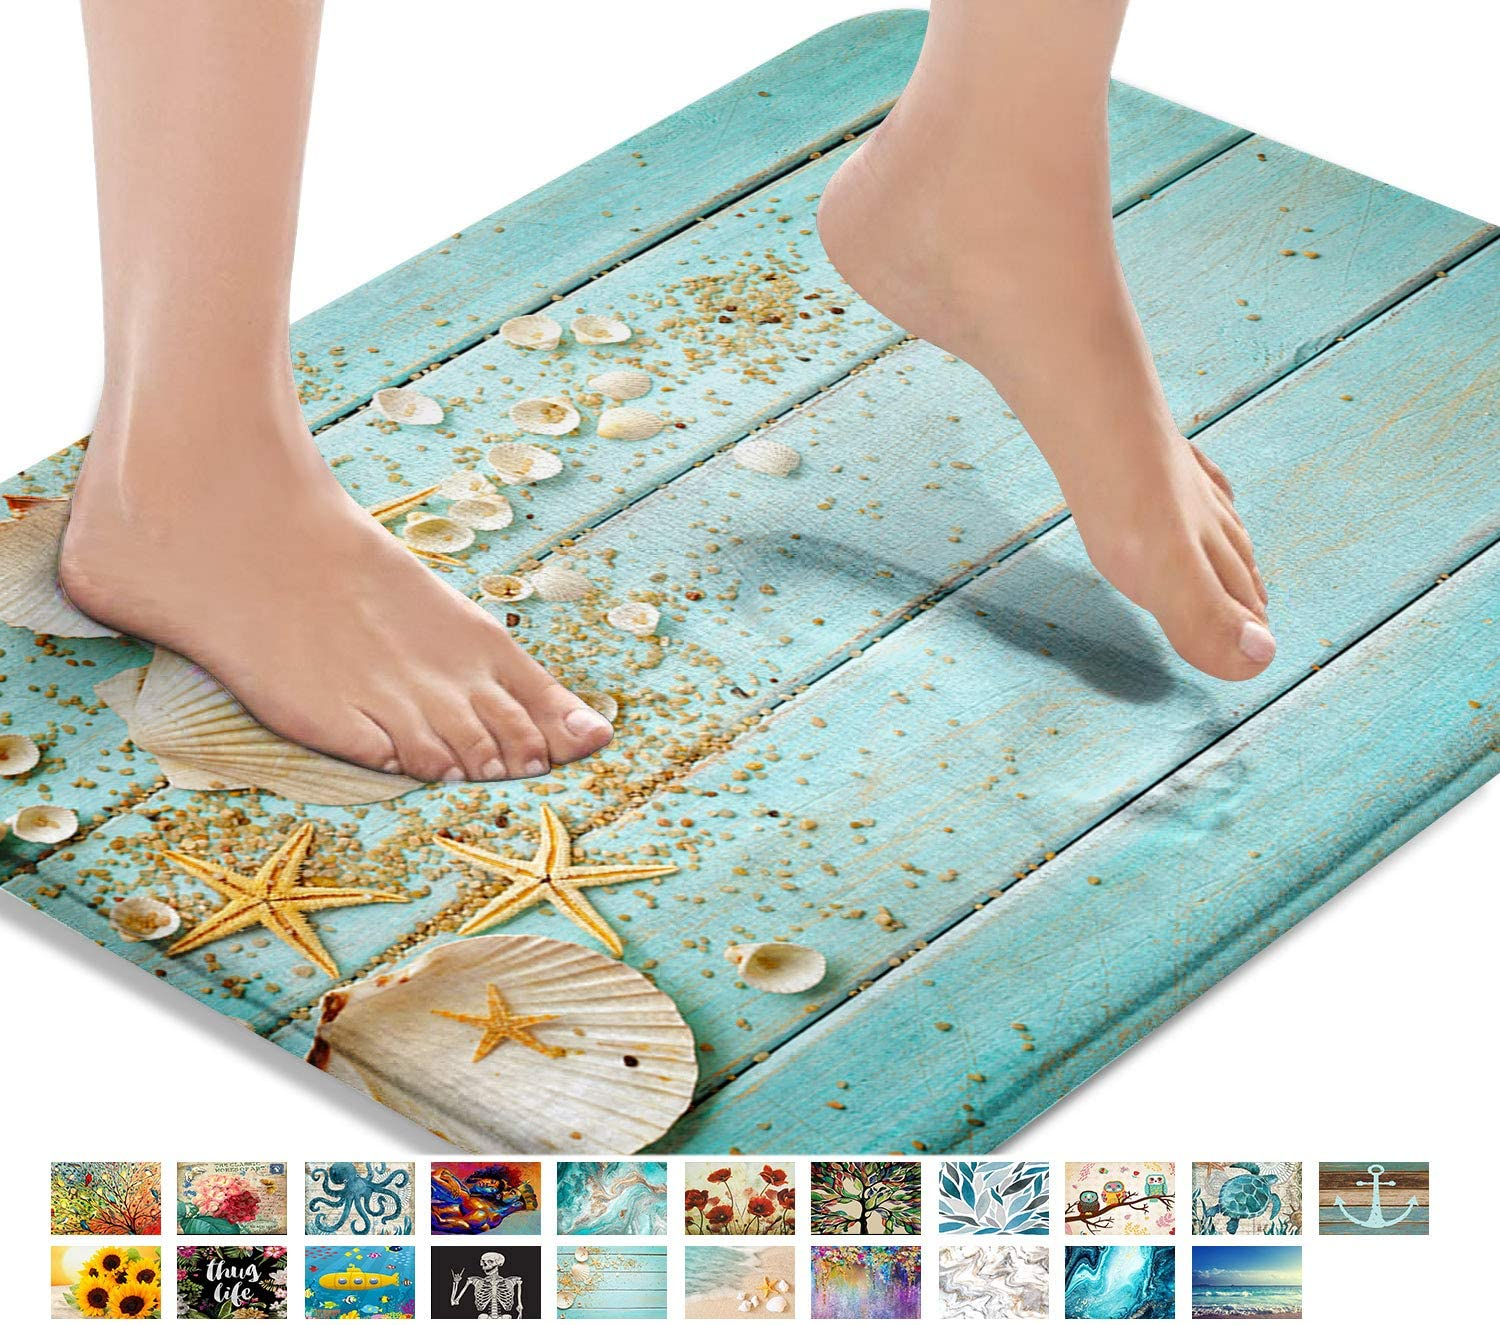 Britimes Bath Mats for Bathroom, Bathroom Mats Rugs No Silp, Beach Shell Sea Collection Vintage Boho Washable Cover Floor Rug Carpets Floor Mat Bathroom Decorations 16x24 Inches for Kitchen Bedroom